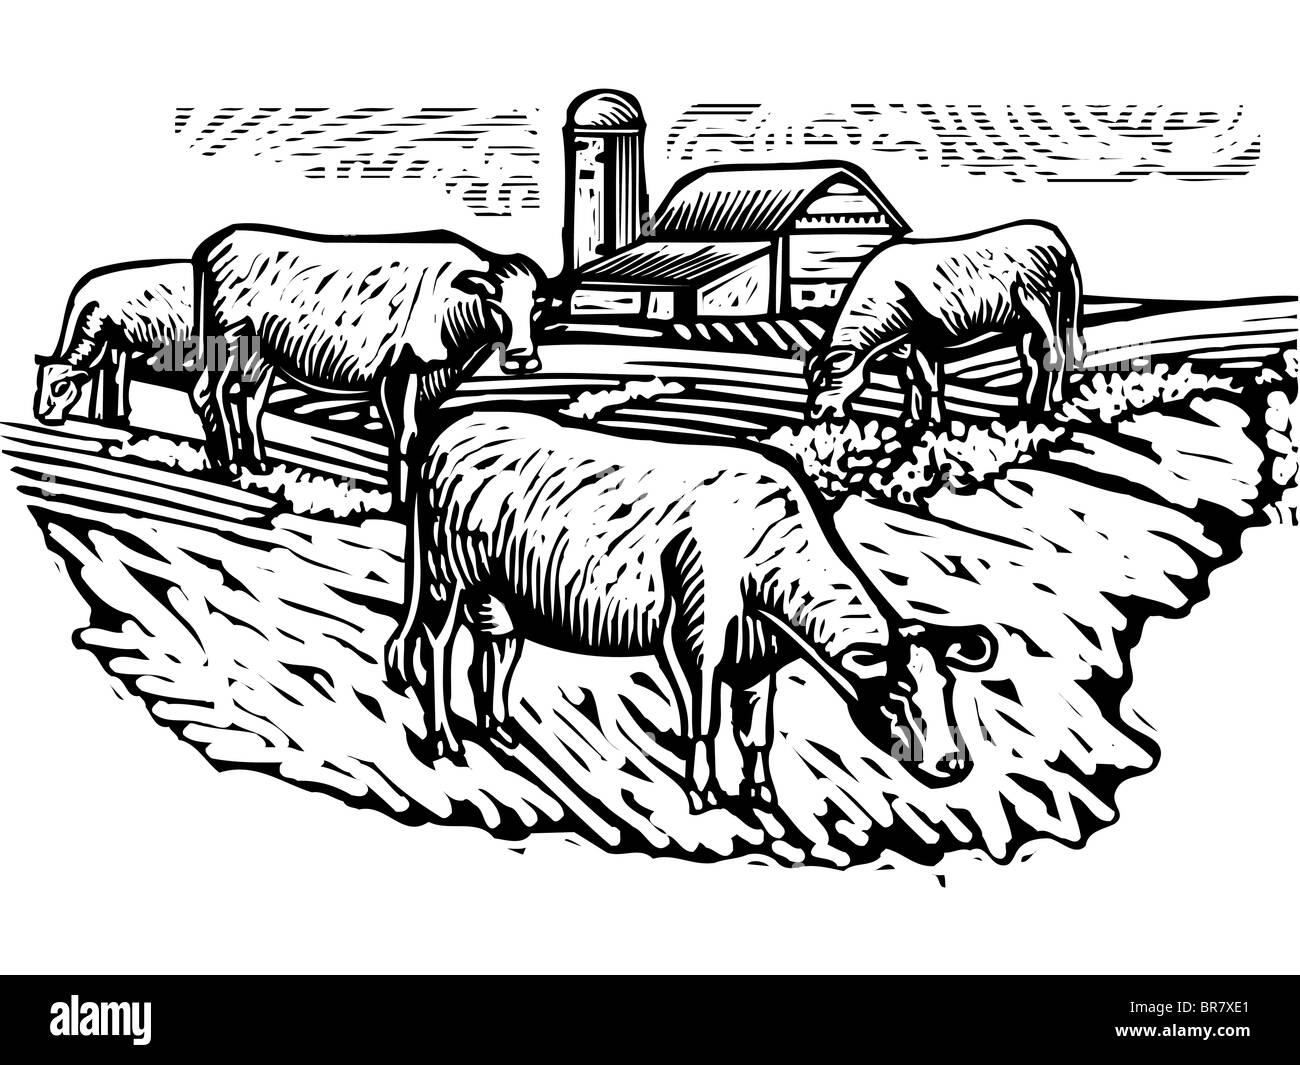 Black and white illustration of cows grazing on a pasture with a building in the background - Stock Image